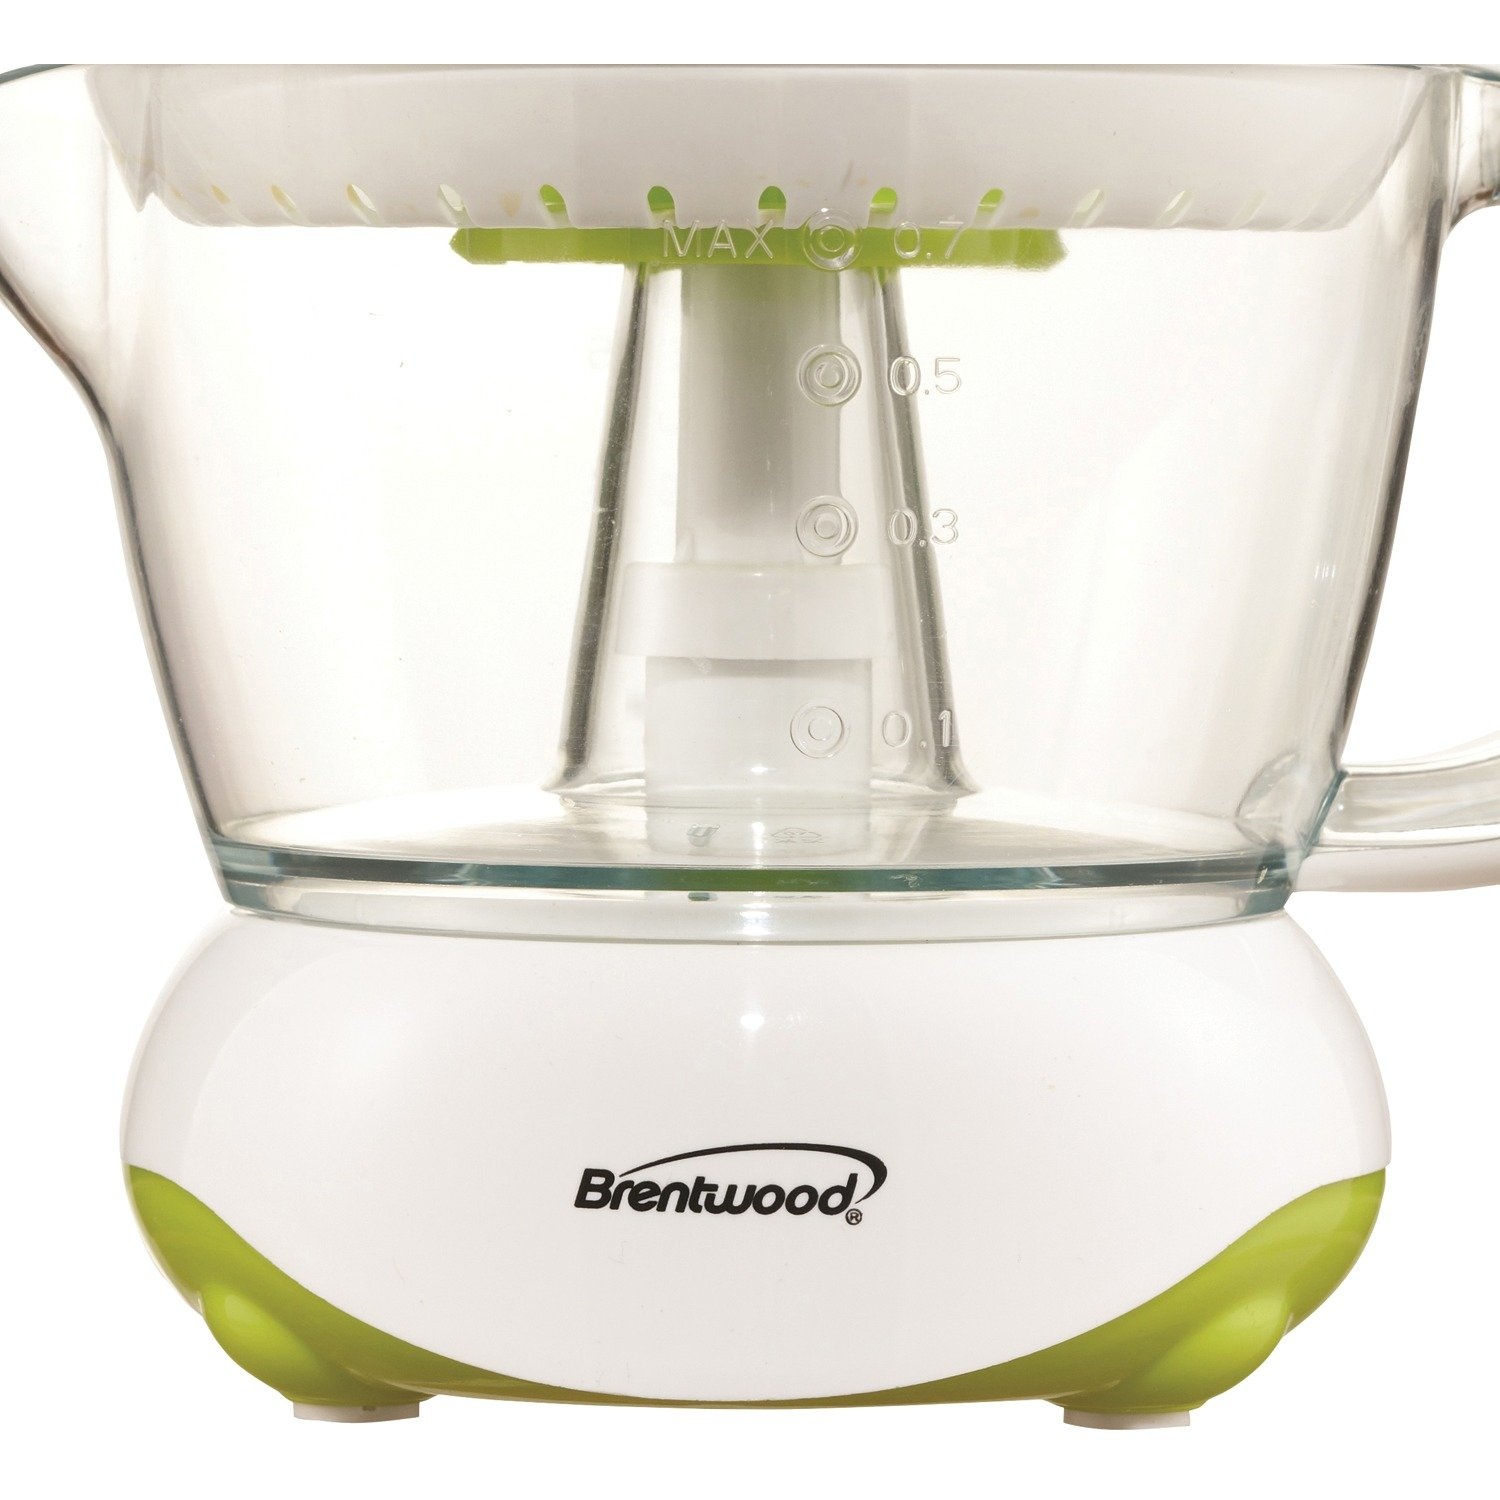 Brentwood  J-15  24oz  Electric  Citrus  Juicer,  White by Brentwood (Image #8)